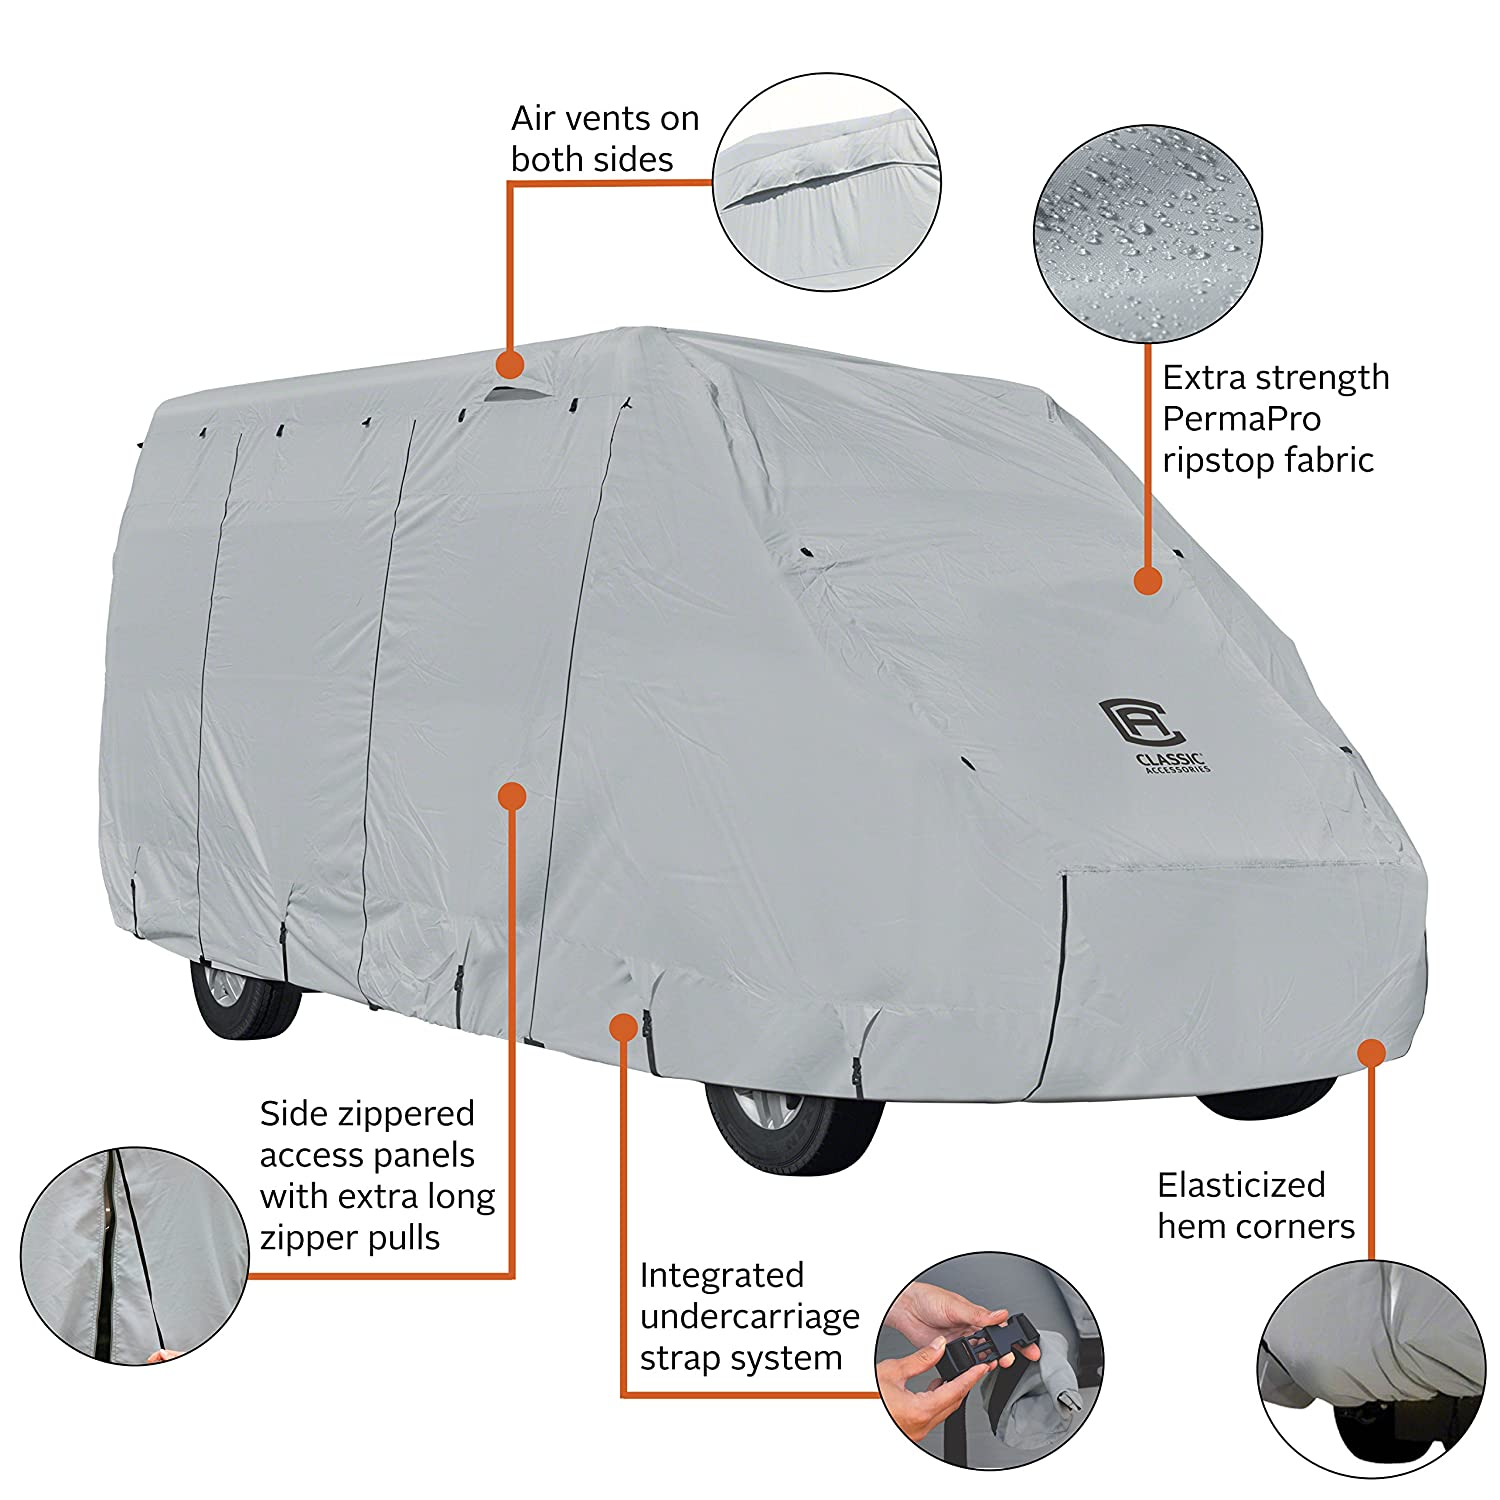 Classic Accessories OverDrive PermaPRO Deluxe Class B RV Cover, Fits up to 20' RVs - Lightweight Ripstop Fabric with RV Cover (80-411-141001-RT) Fits up to 20' RVs - Lightweight Ripstop Fabric with RV Cover (80-411-141001-RT) 80-414-171001-RT